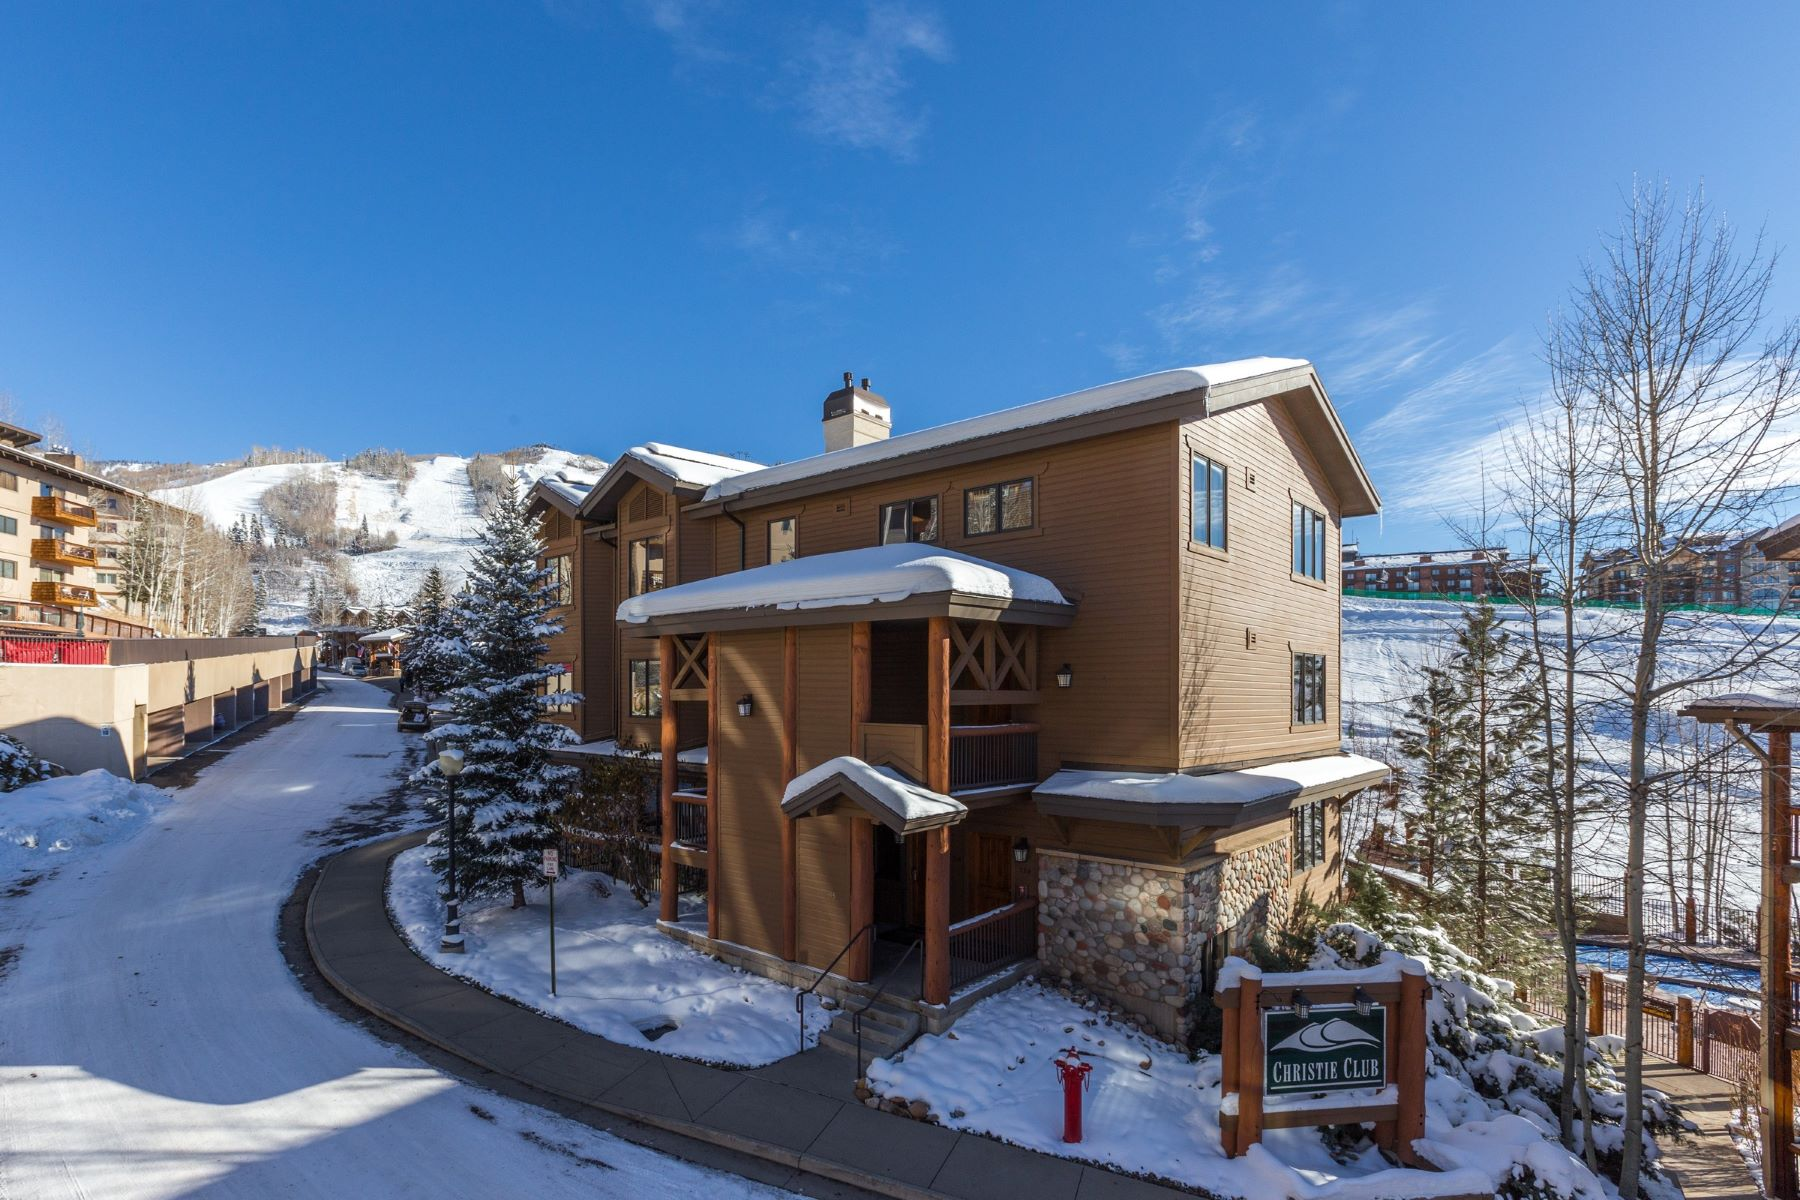 Fractional Ownership for Sale at Christie Club Fractional Ownership 2255 Ski Time SquareDrive #213 Steamboat Springs, Colorado 80487 United States